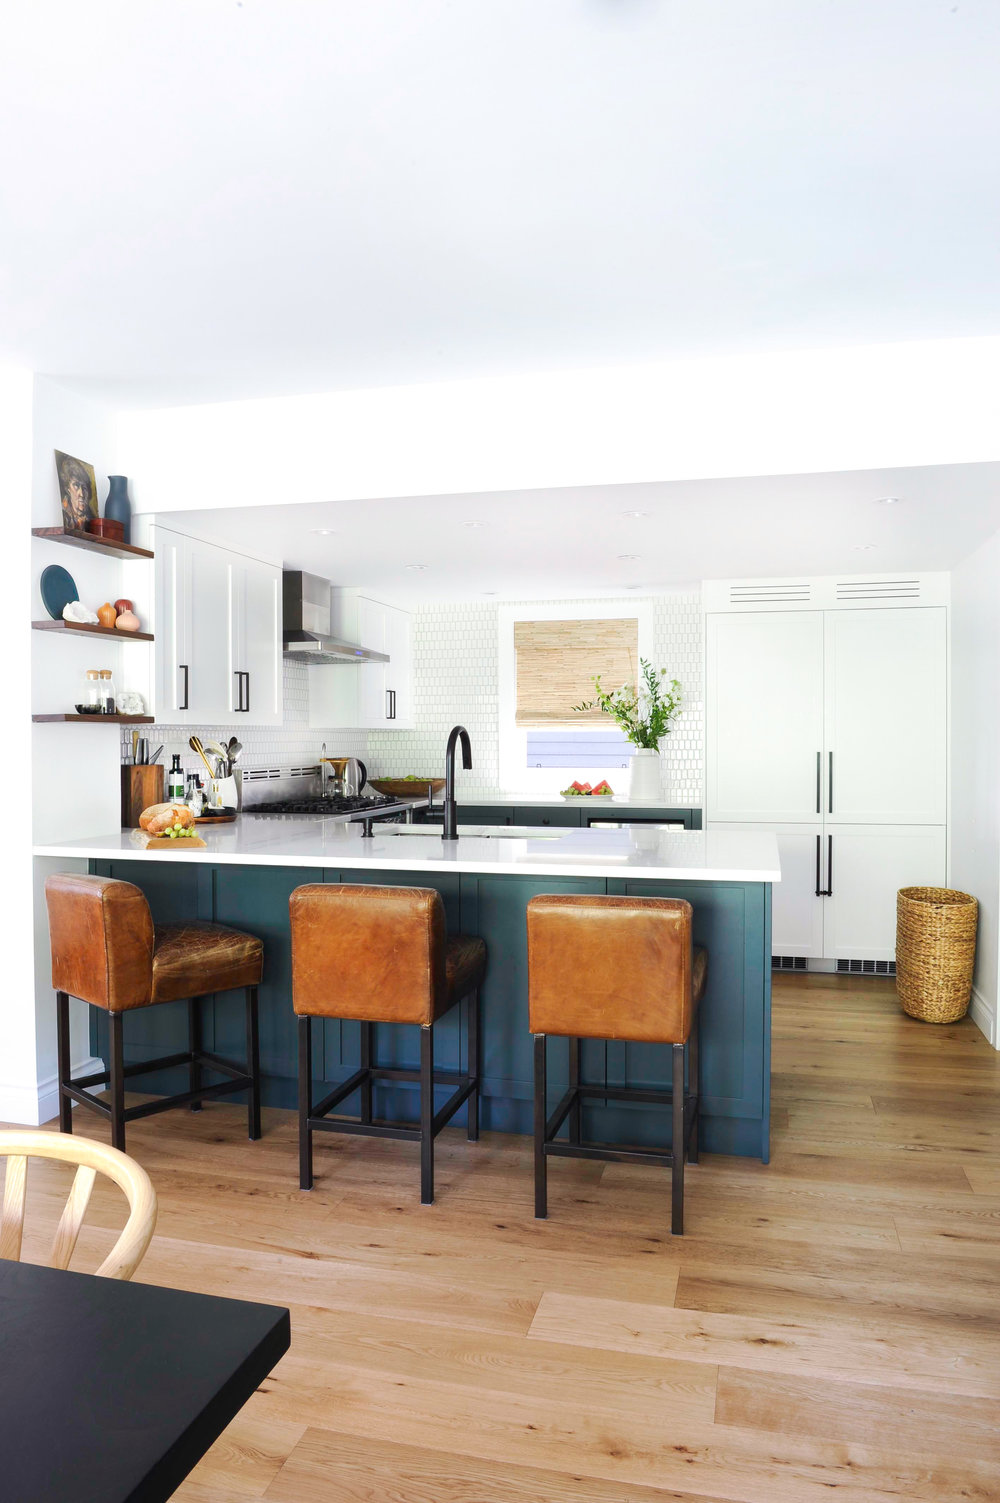 Three leather kitchen barstools are positioned underneath the bar area of the kitchen, which is made up of blue counters.